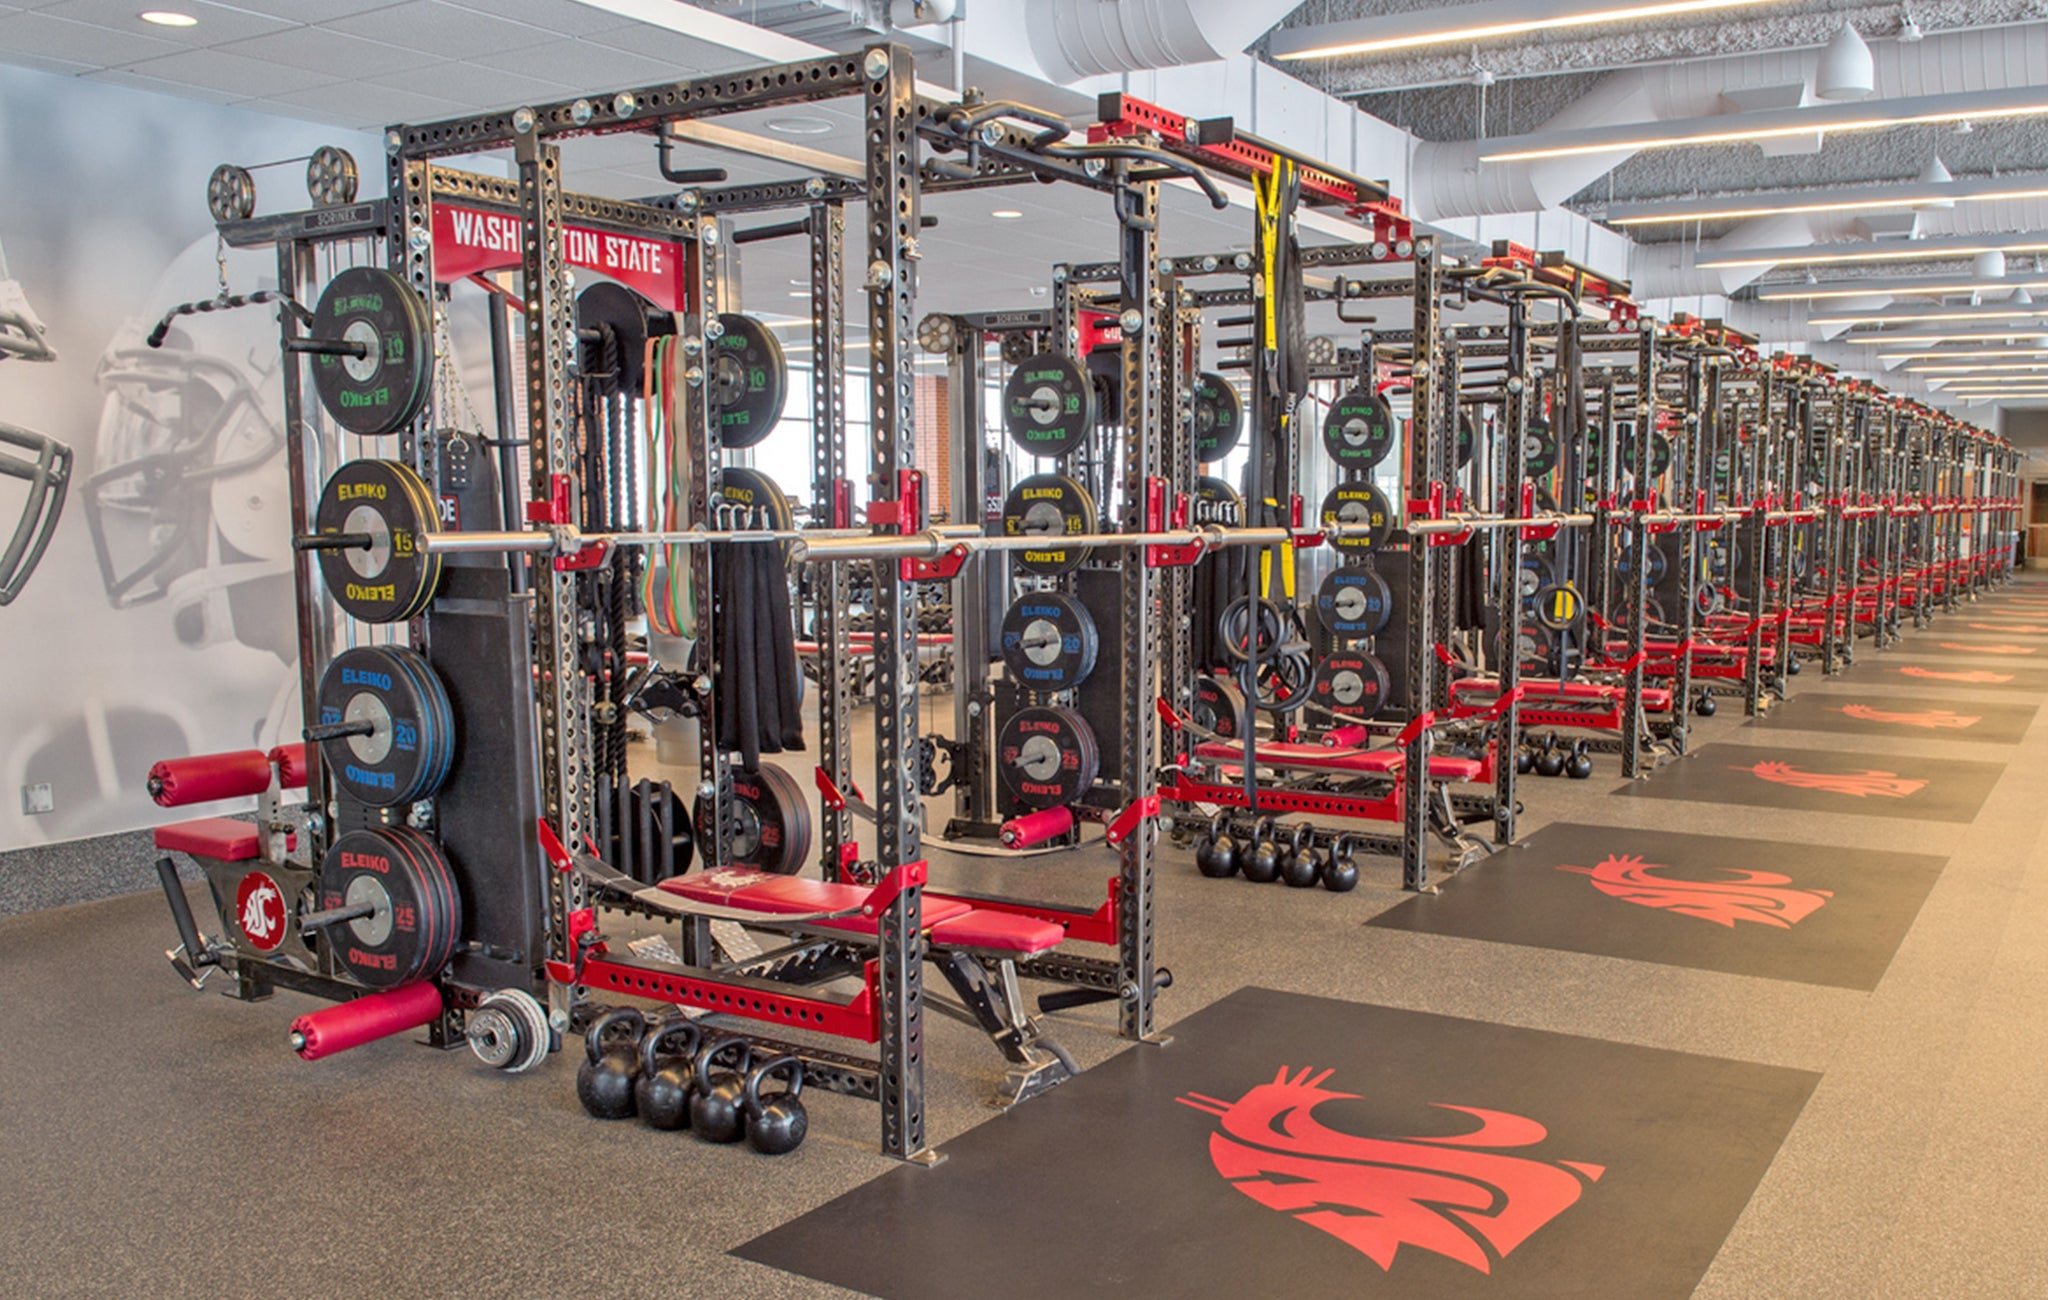 Washington State University strength and conditioning